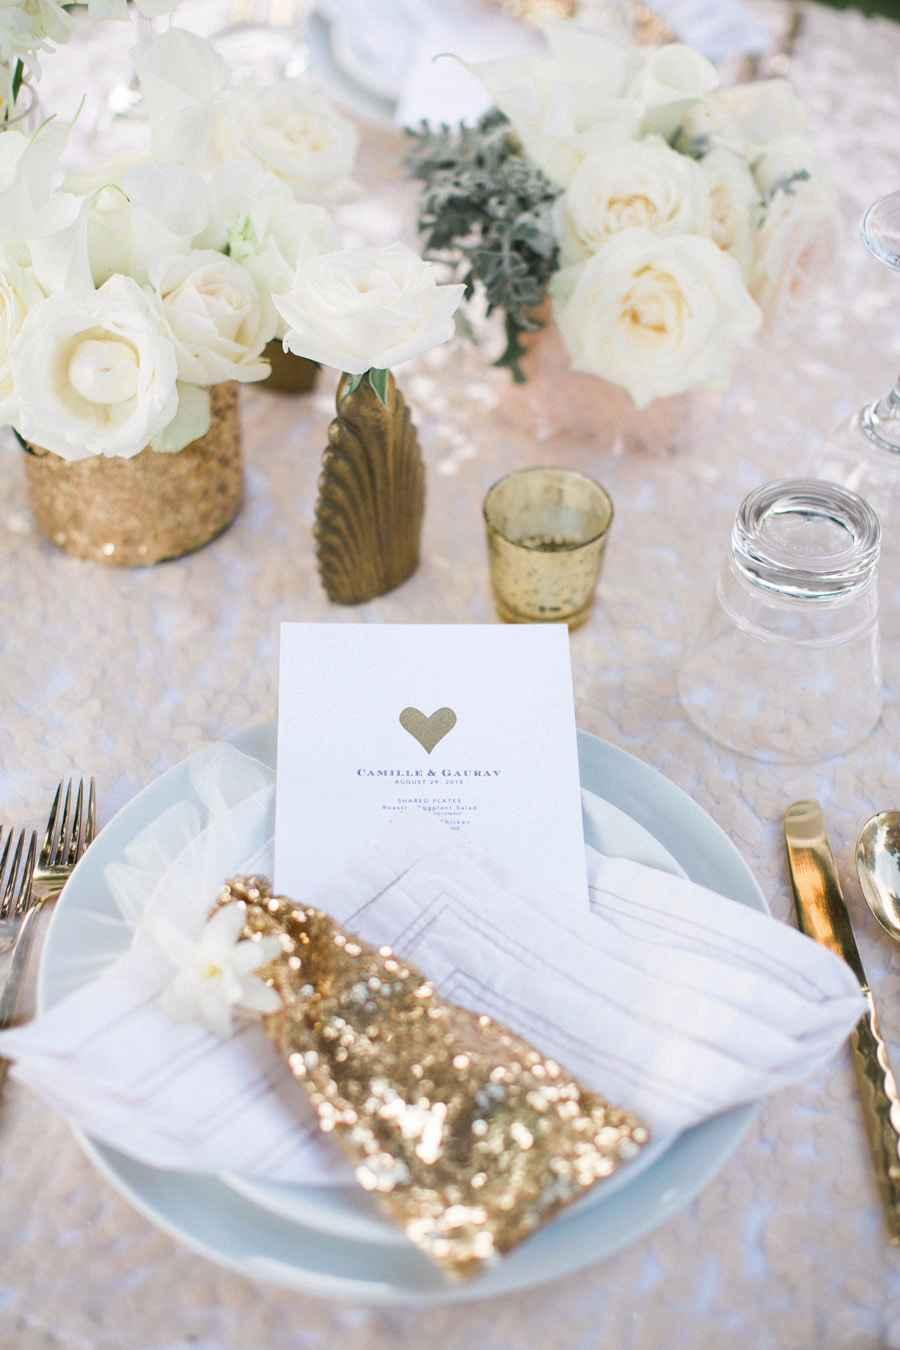 Golden wedding decoration: 60 ideas with photos to inspire 12